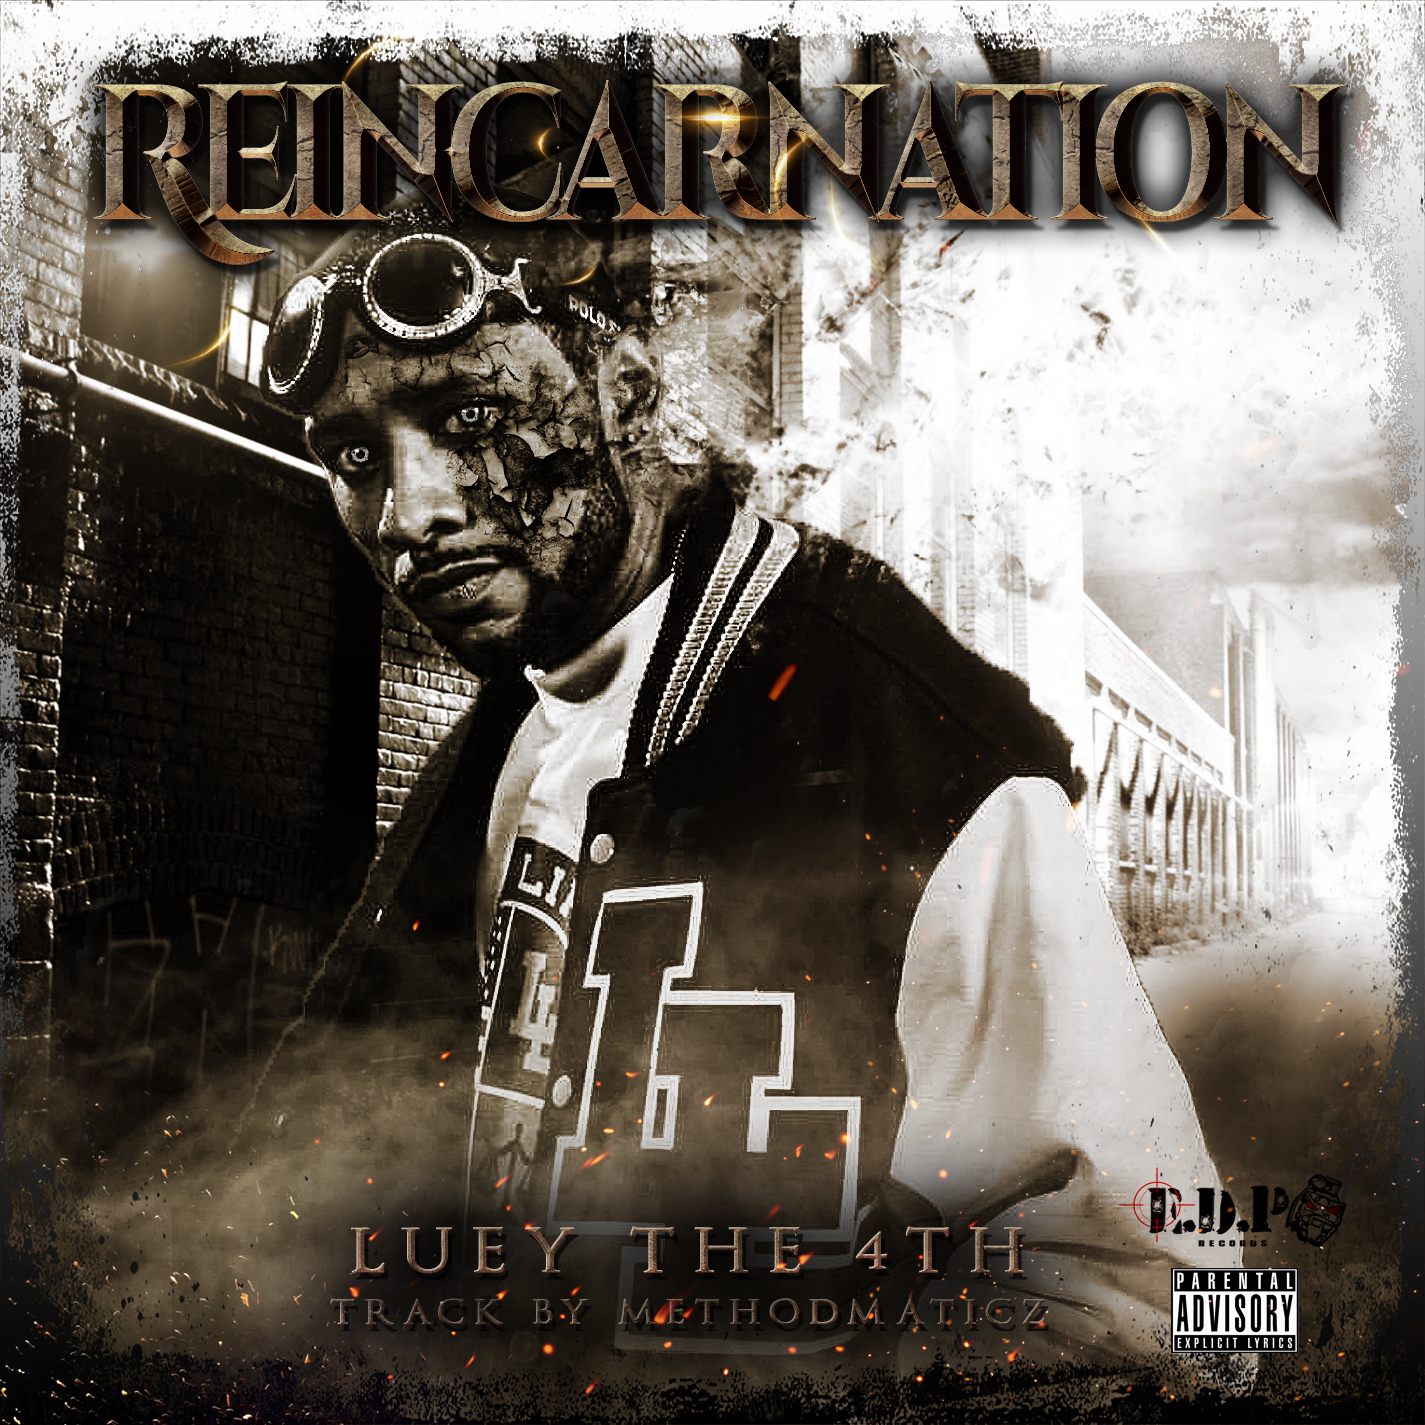 Reincarnation (single)